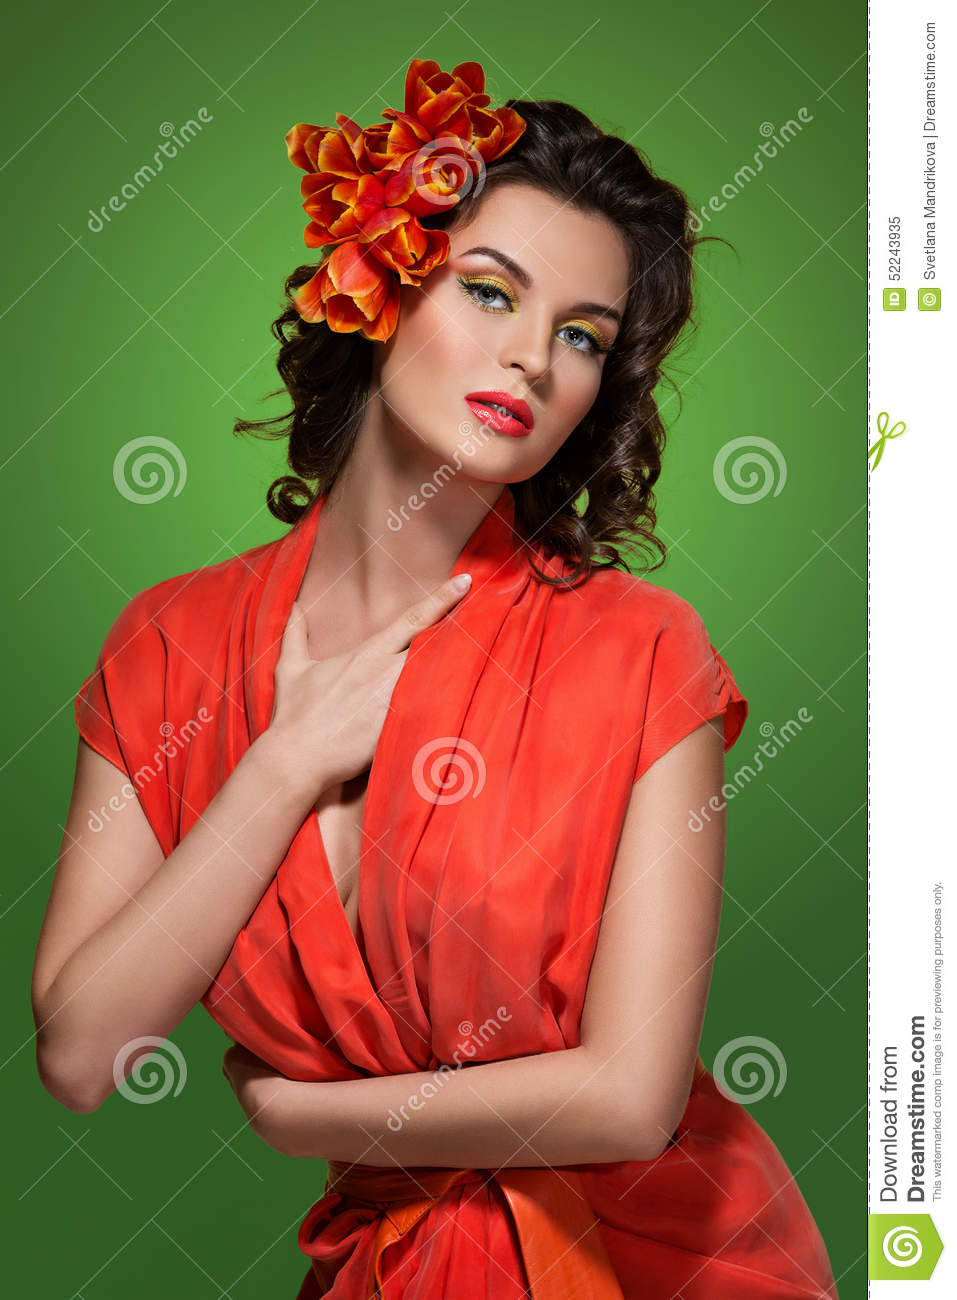 Girl in orange dress stock image. Image of makeup ...